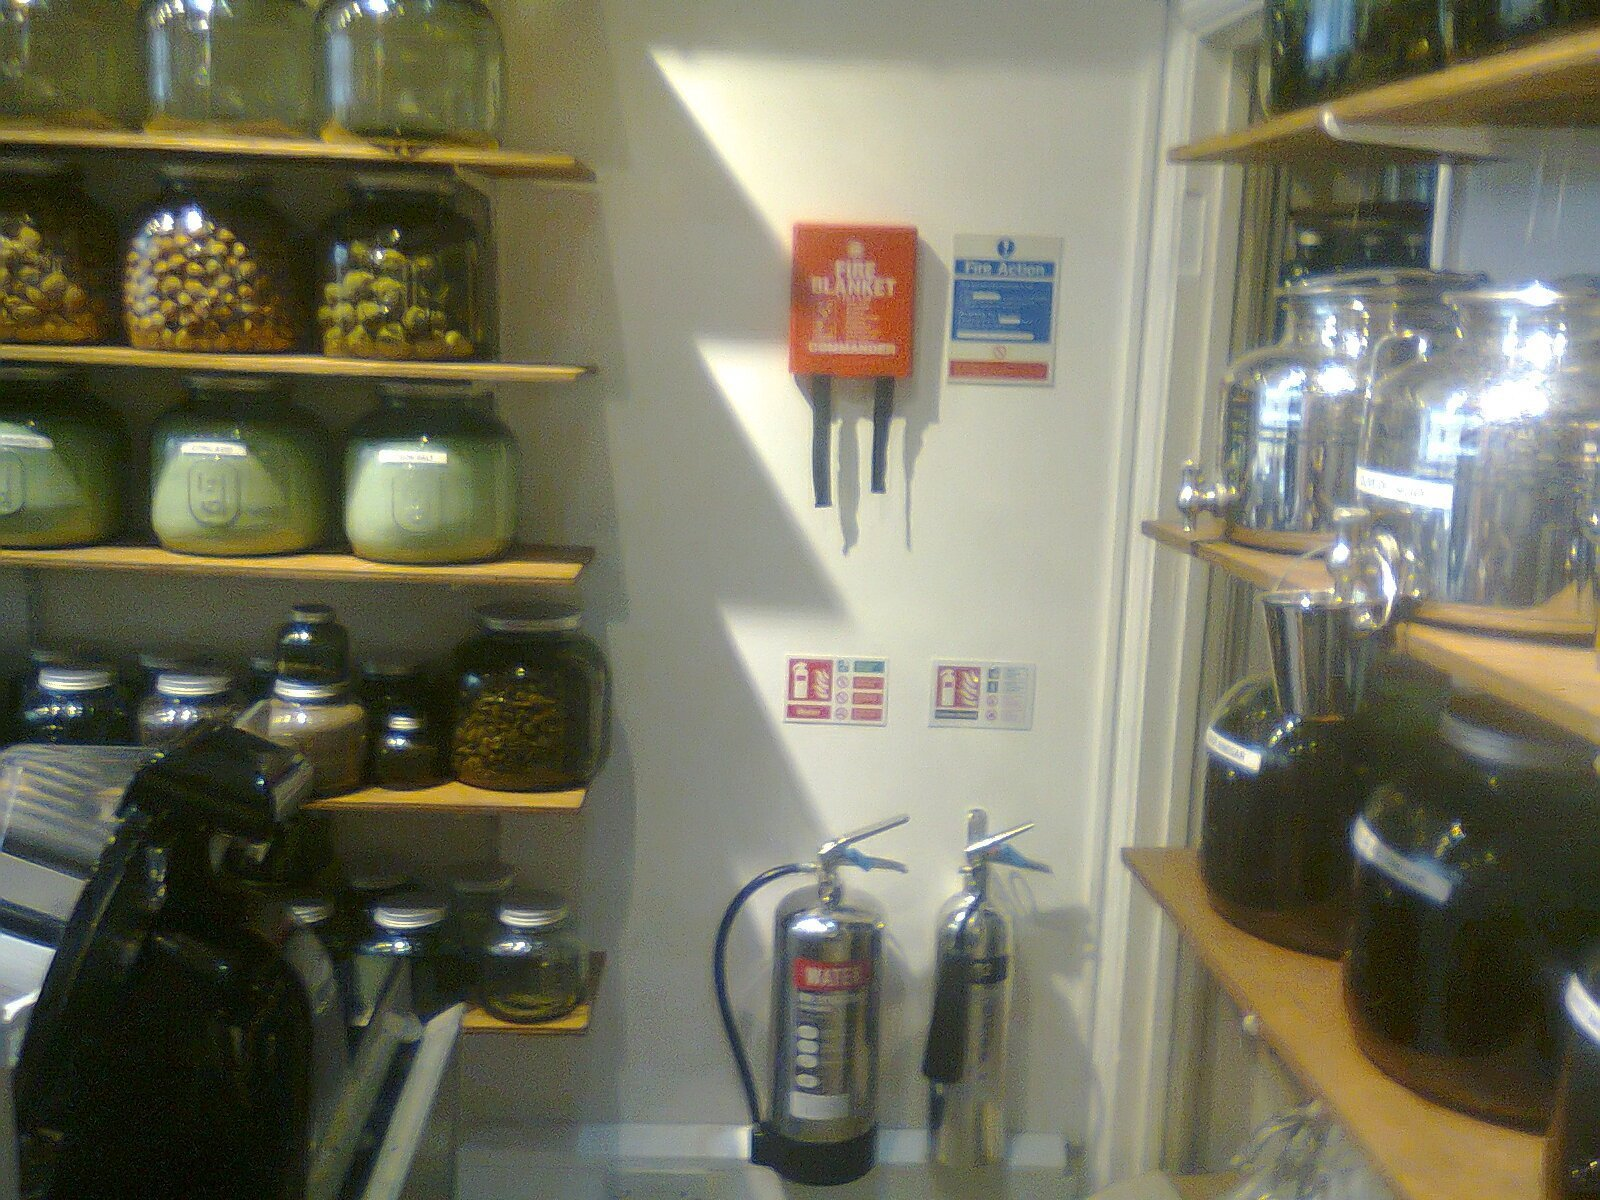 Fire Extinguisher Fitting to Wall & Installation to meet BS 5306-8: 2012 - Reading, Berkshire